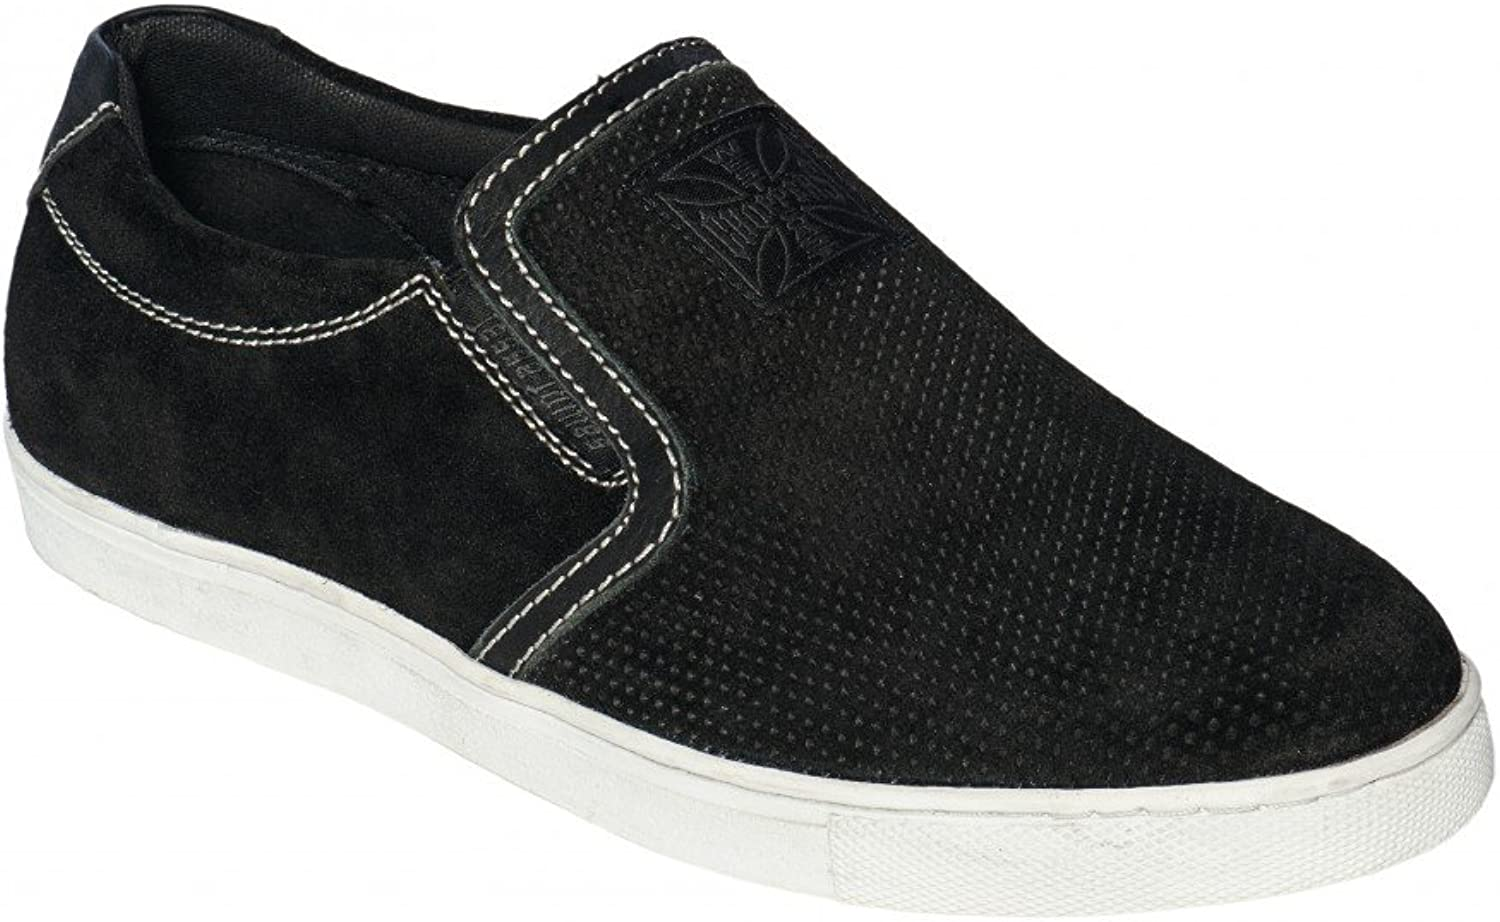 West Coast Choppers shoes Outlaw Suede Slip-Ons Black